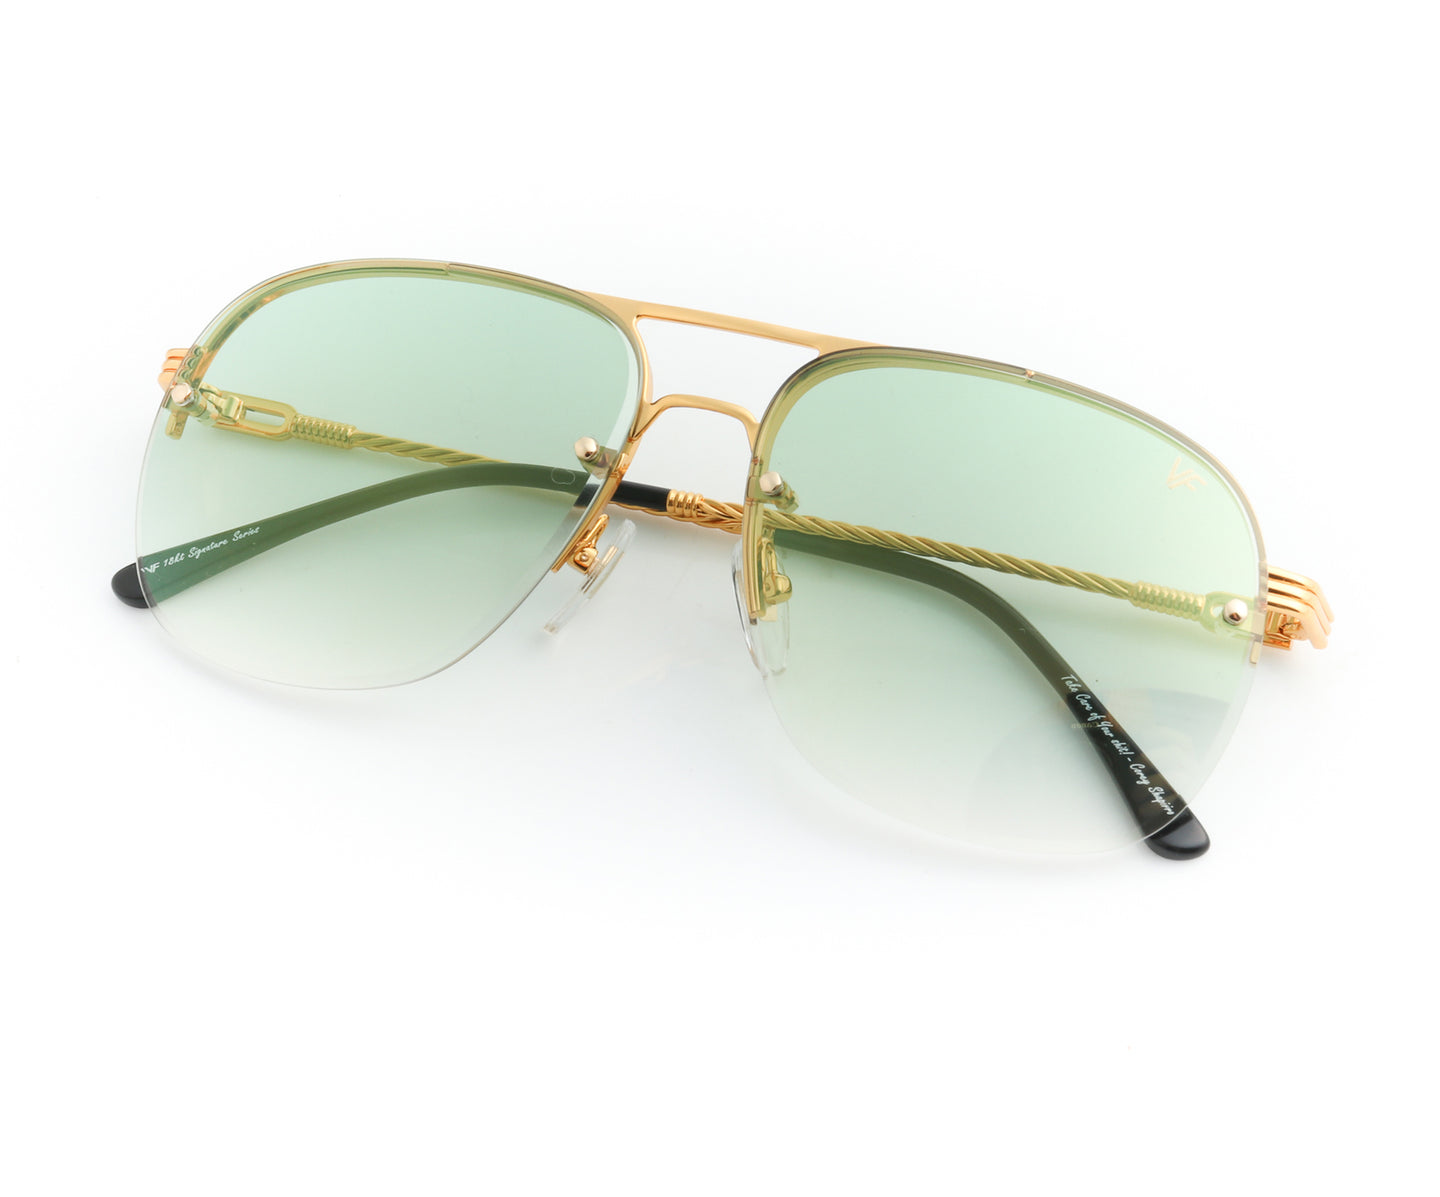 Snatch Bevel 18KT Drill Mount Gold (Pastel Green), VF Drill Mount , glasses frames, eyeglasses online, eyeglass frames, mens glasses, womens glasses, buy glasses online, designer eyeglasses, vintage sunglasses, retro sunglasses, vintage glasses, sunglass, eyeglass, glasses, lens, vintage frames company, vf